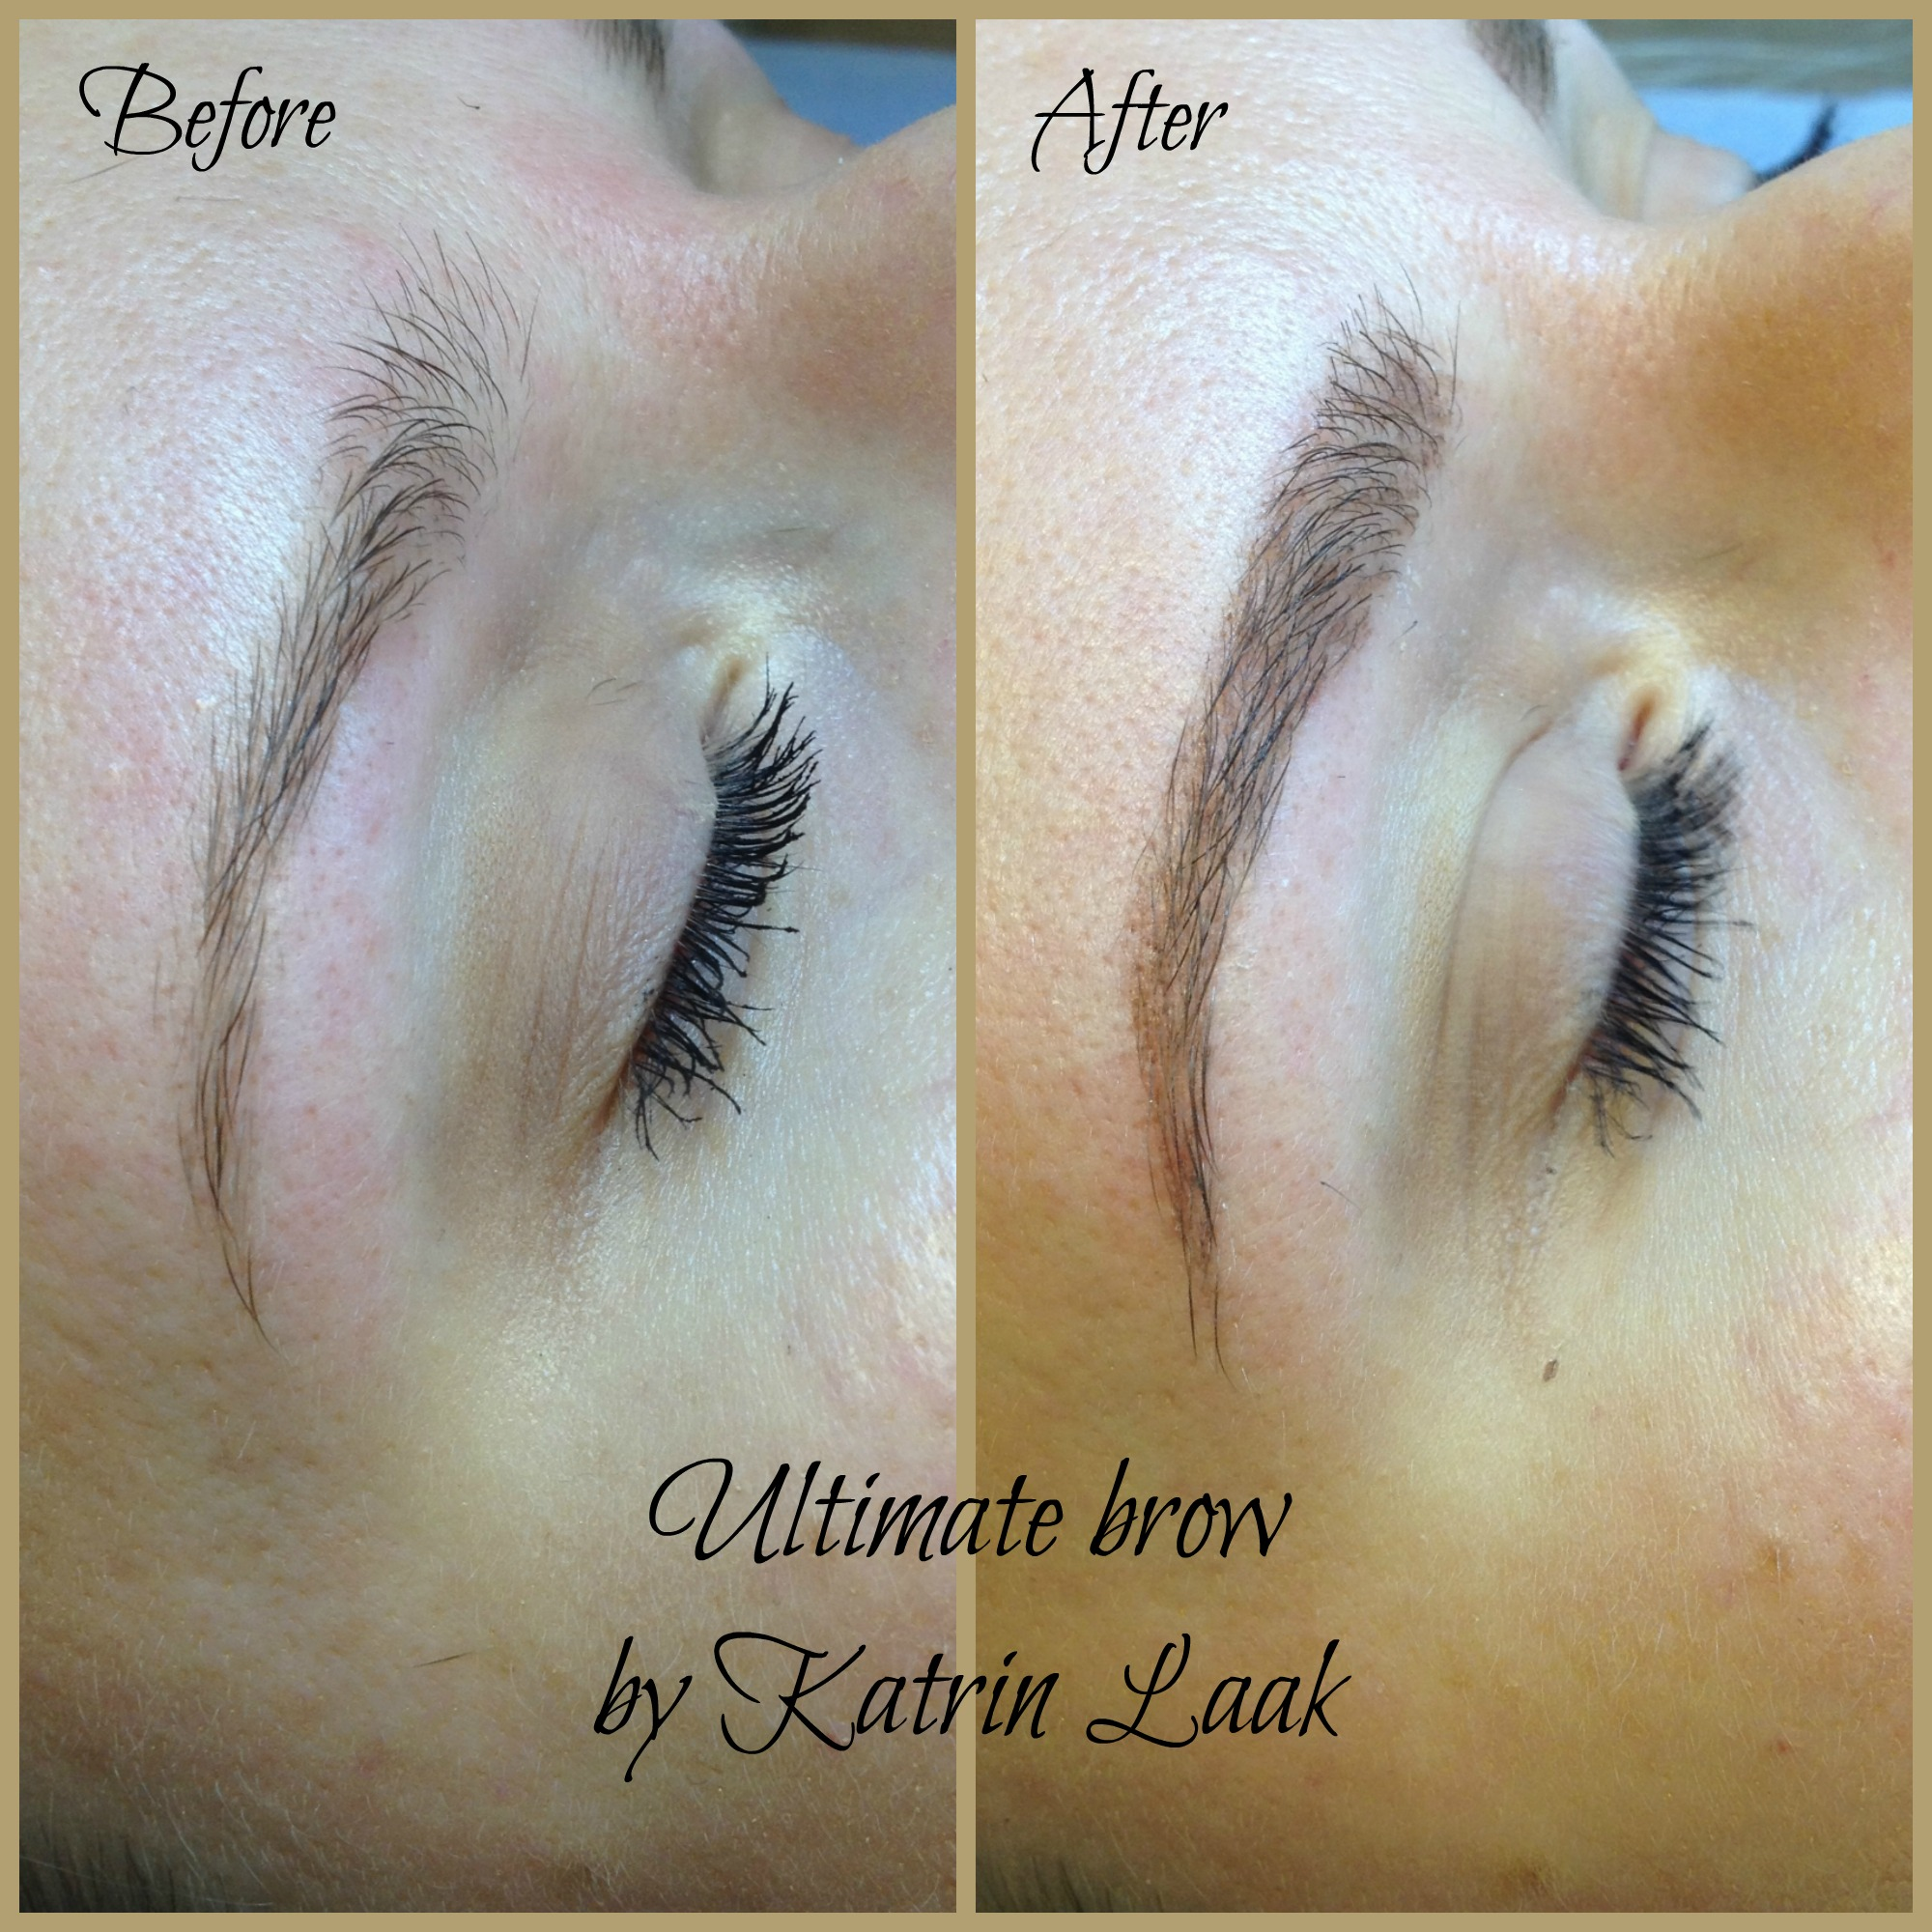 Ultimate brow 5